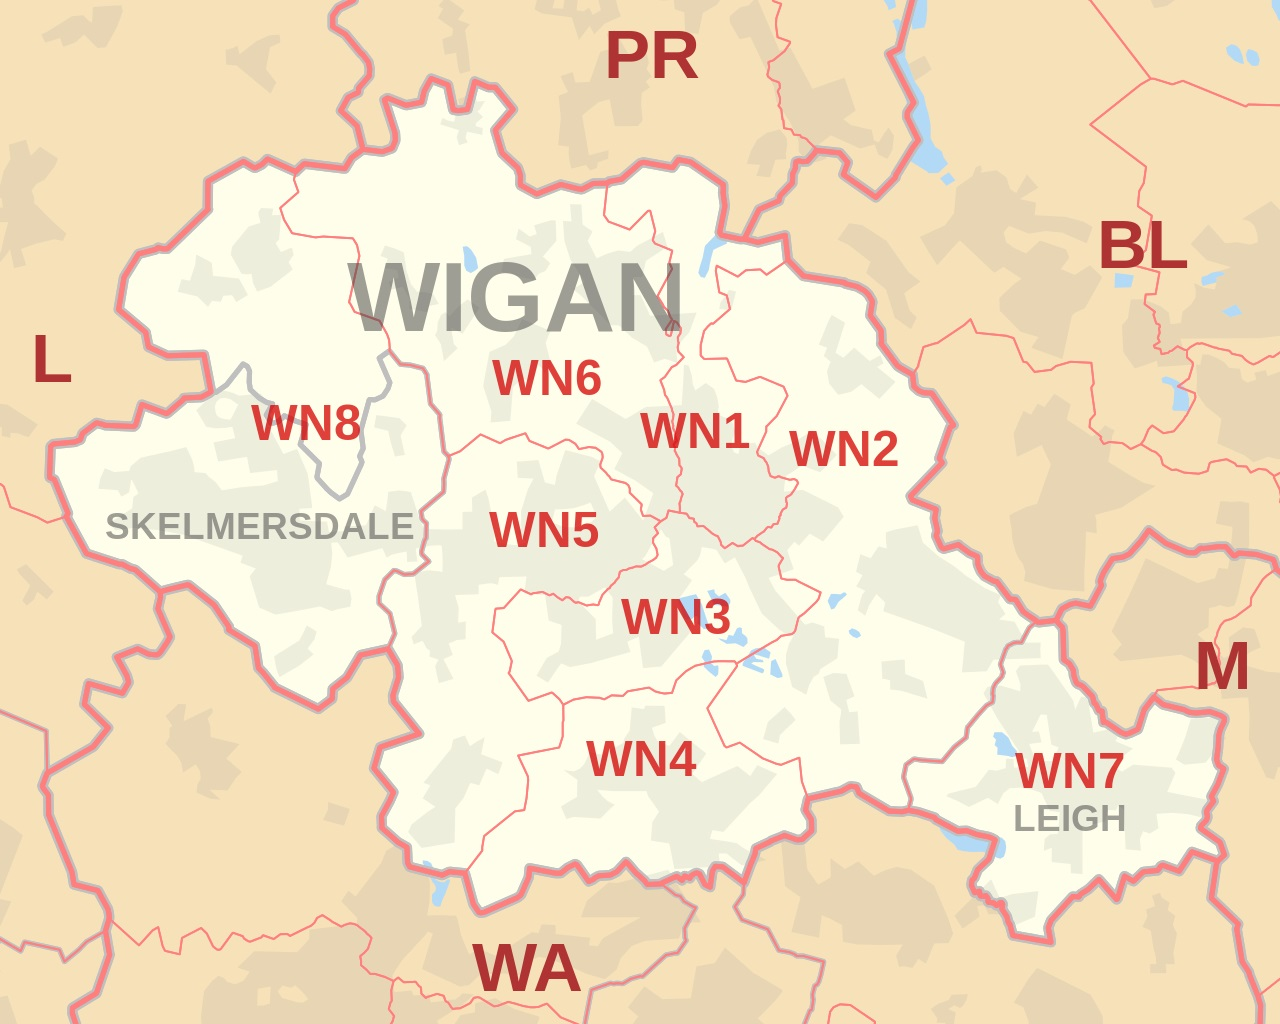 Wigan and WN postcode area map